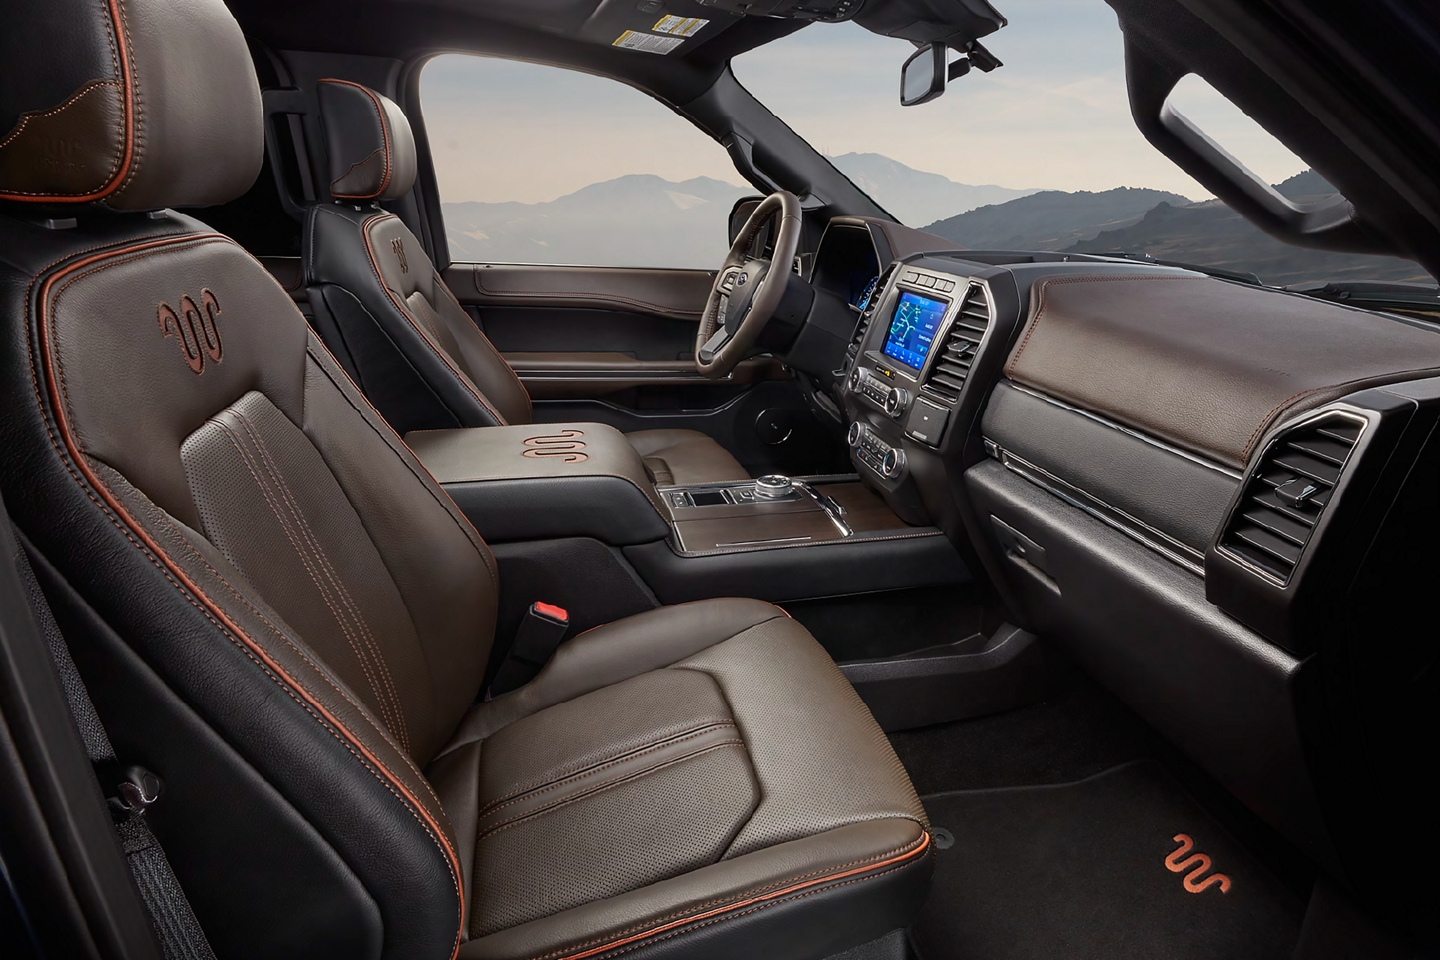 2020 Ford Expedition Cockpit